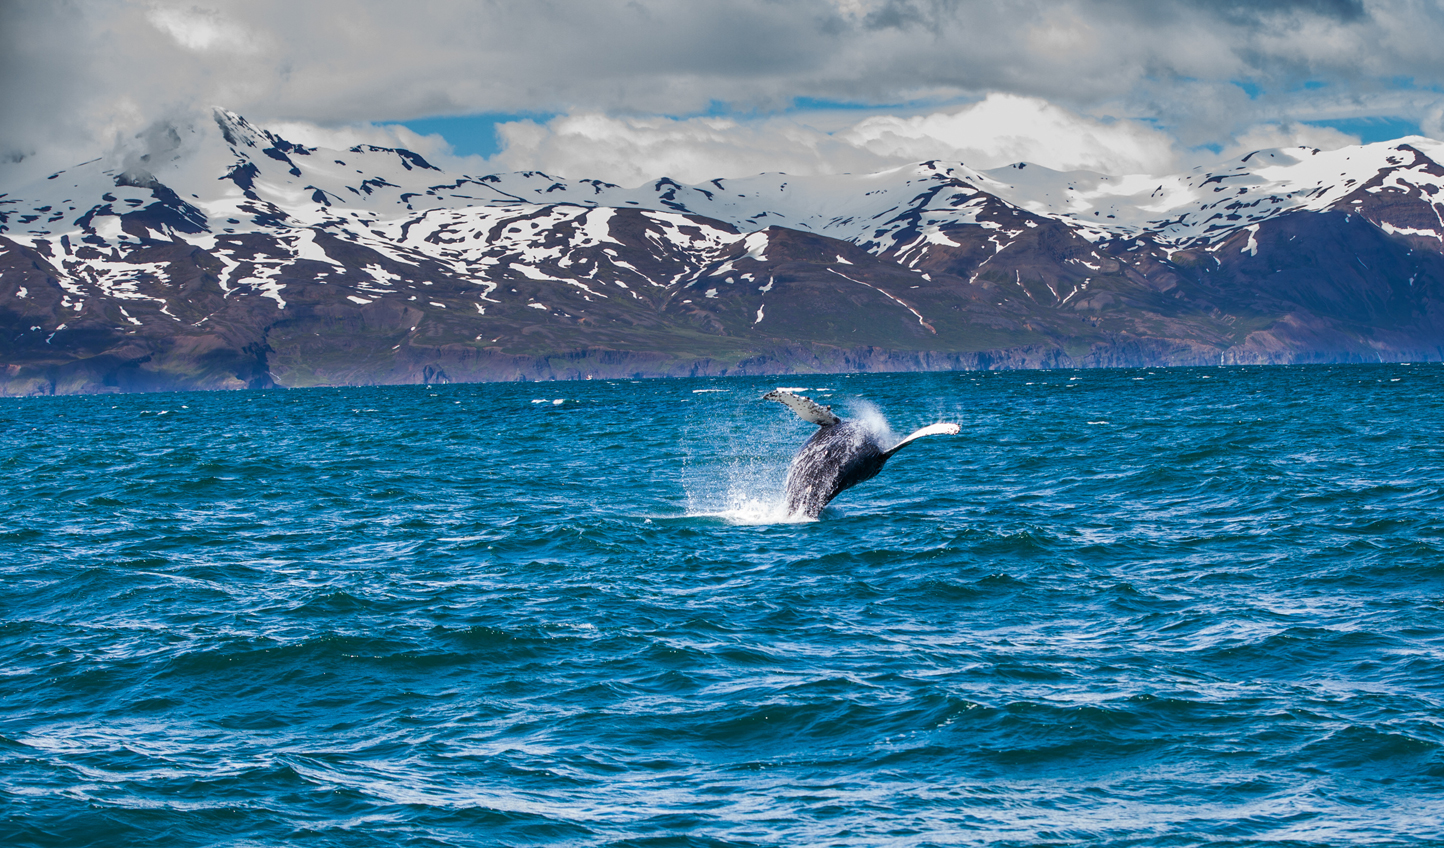 Head out to sea and catch sight pf breaching whales